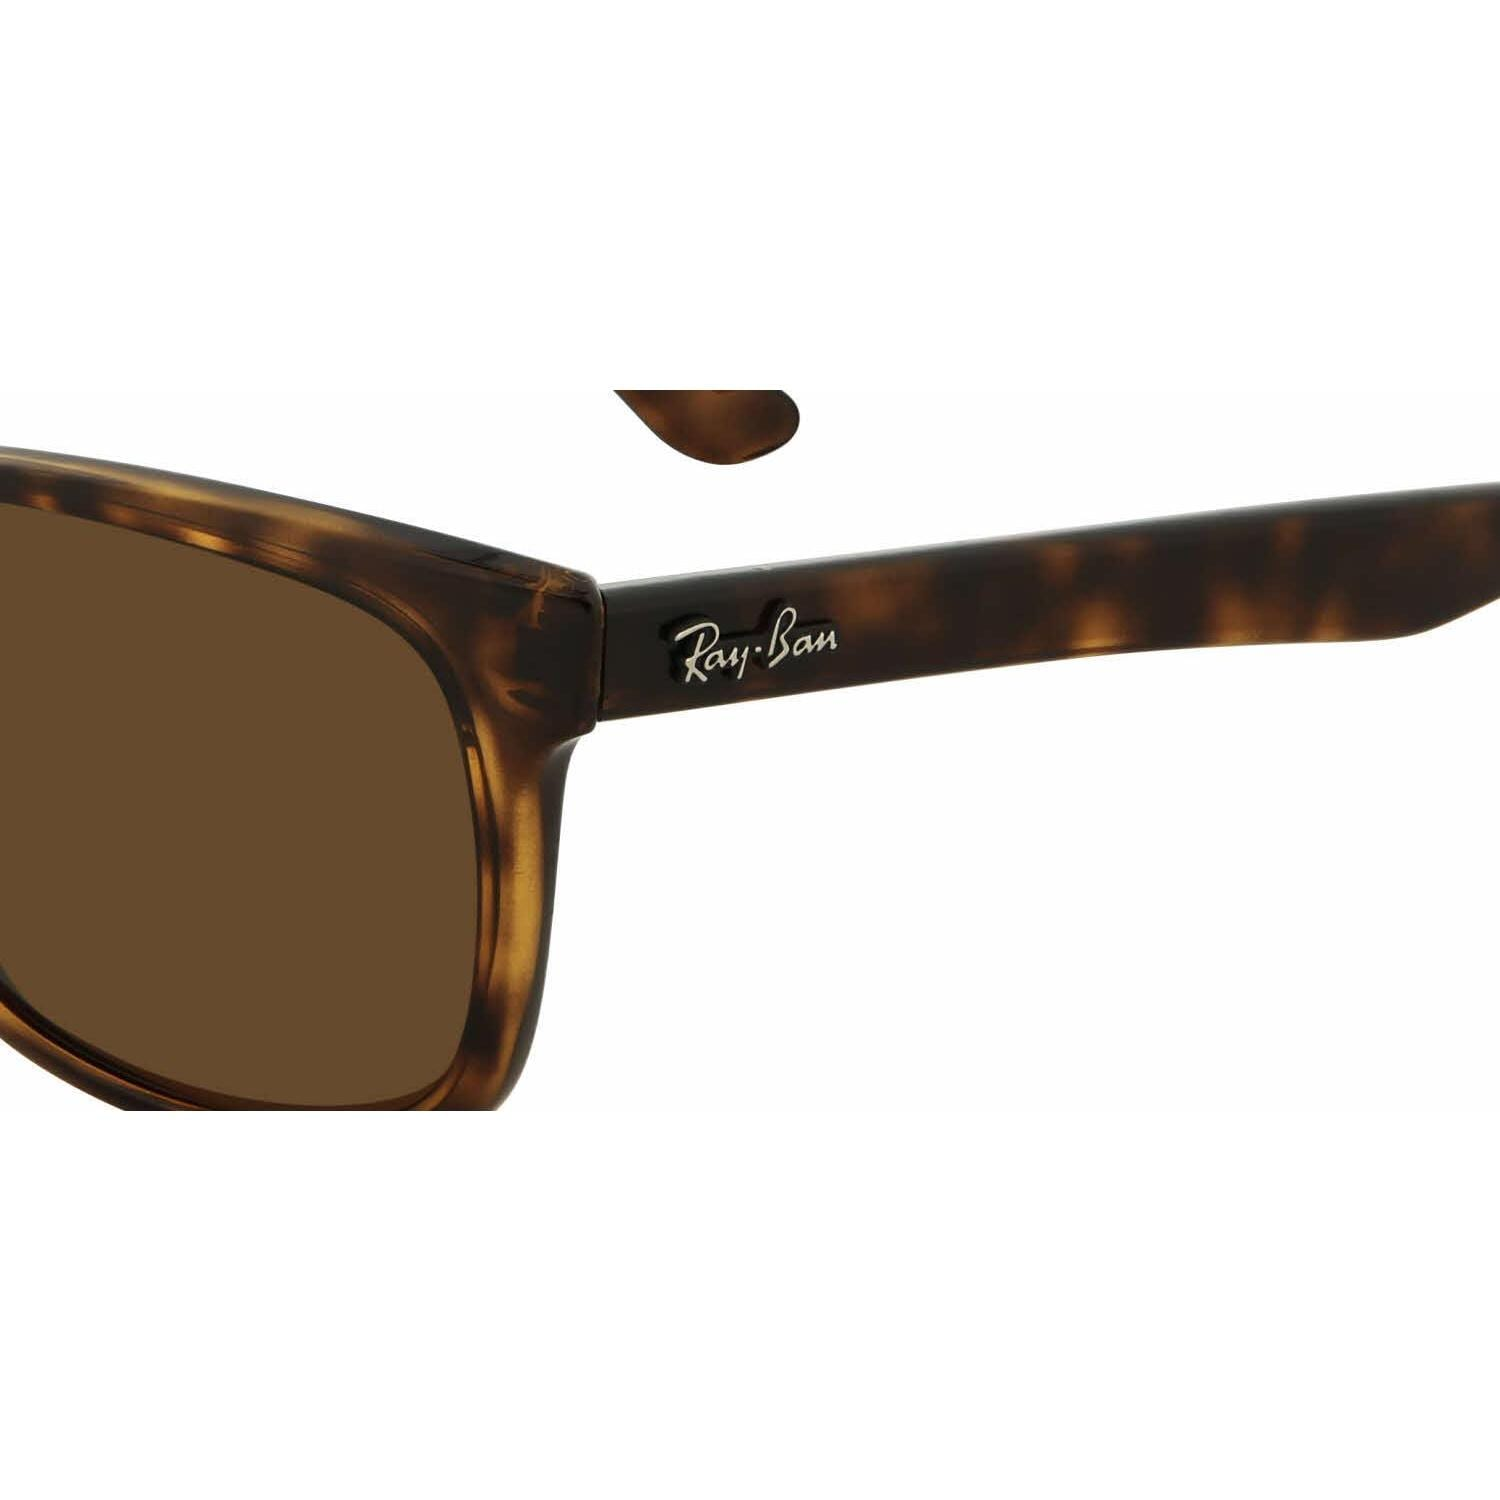 ef07345aa0 Shop Ray Ban Mens RB4181 710 83 Havana Plastic Square Sunglasses - Brown -  Free Shipping Today - Overstock - 13469085